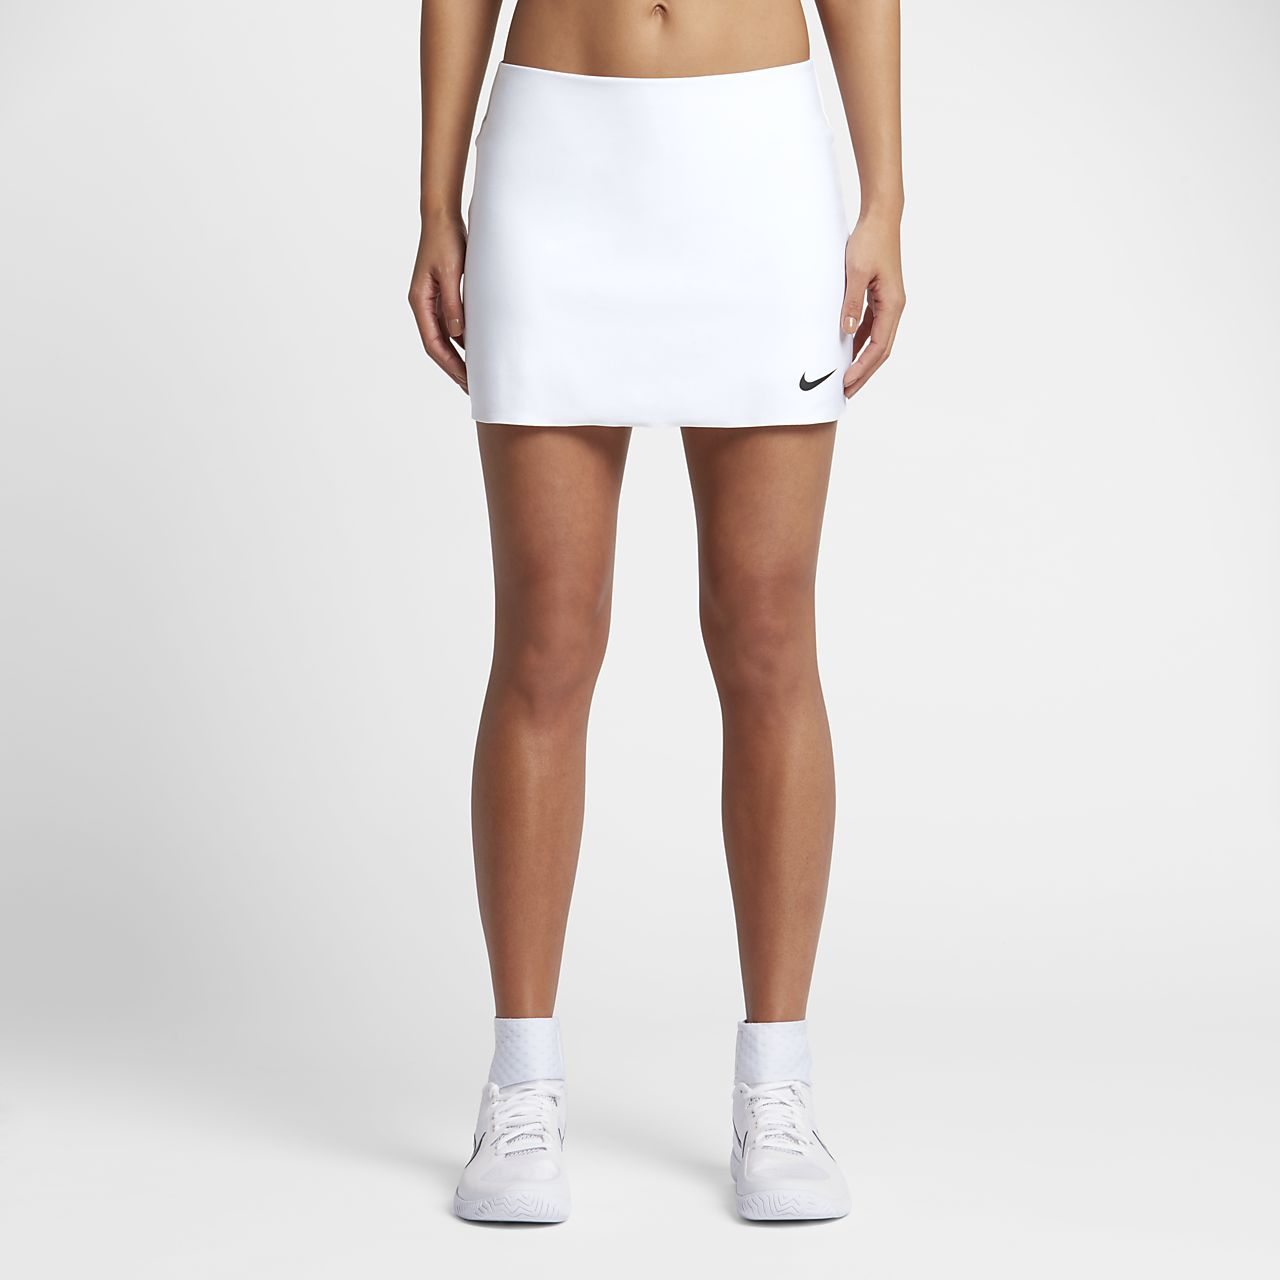 3c51441a3a4 NikeCourt Power Spin Women s Tennis Skirt. Nike.com AU